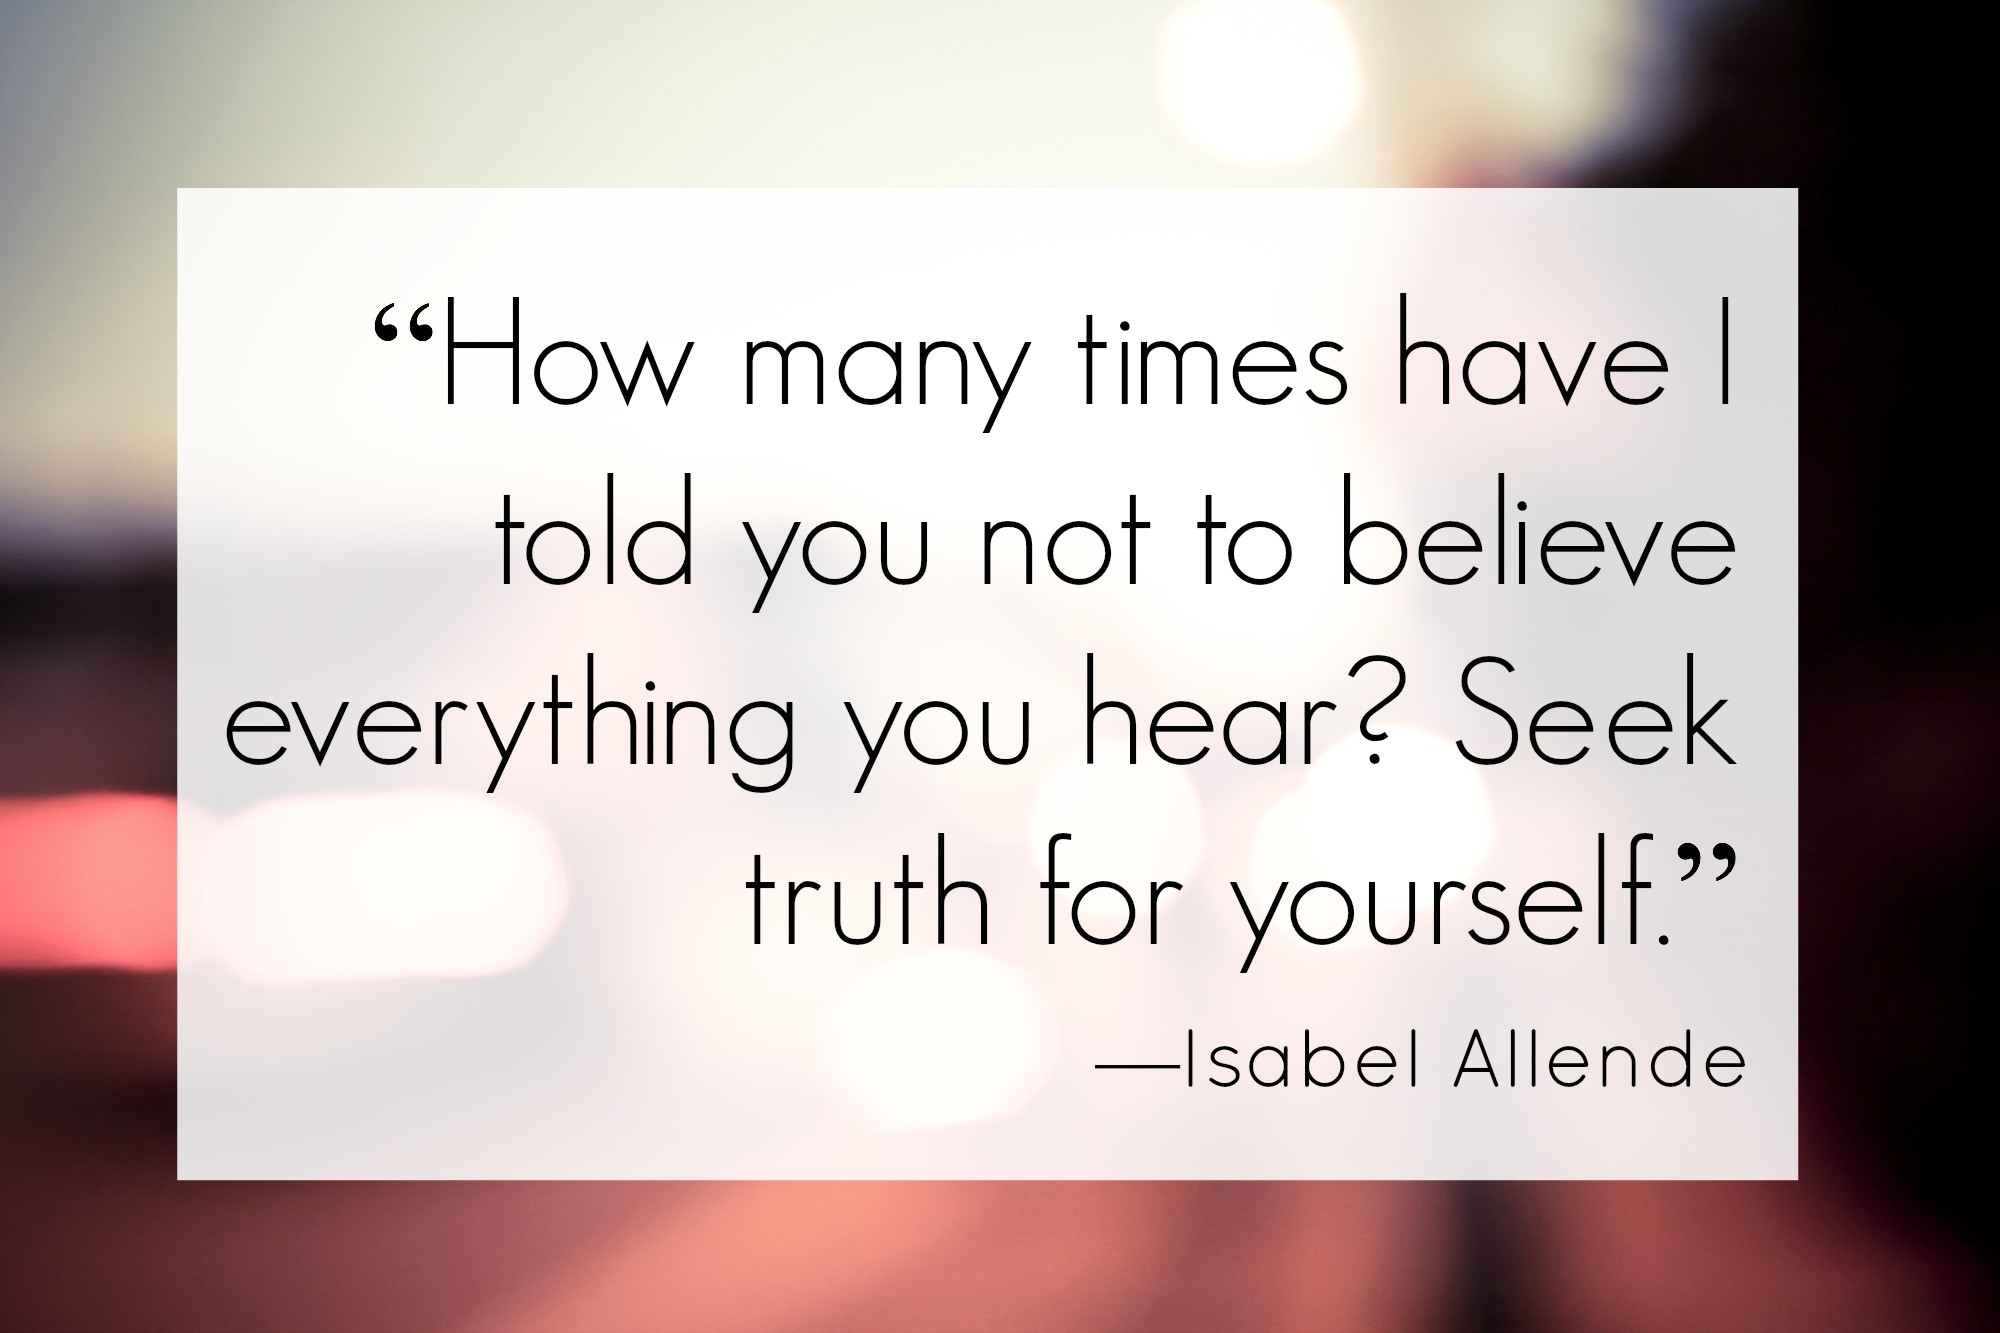 Isabel Allende on Finding the Truth